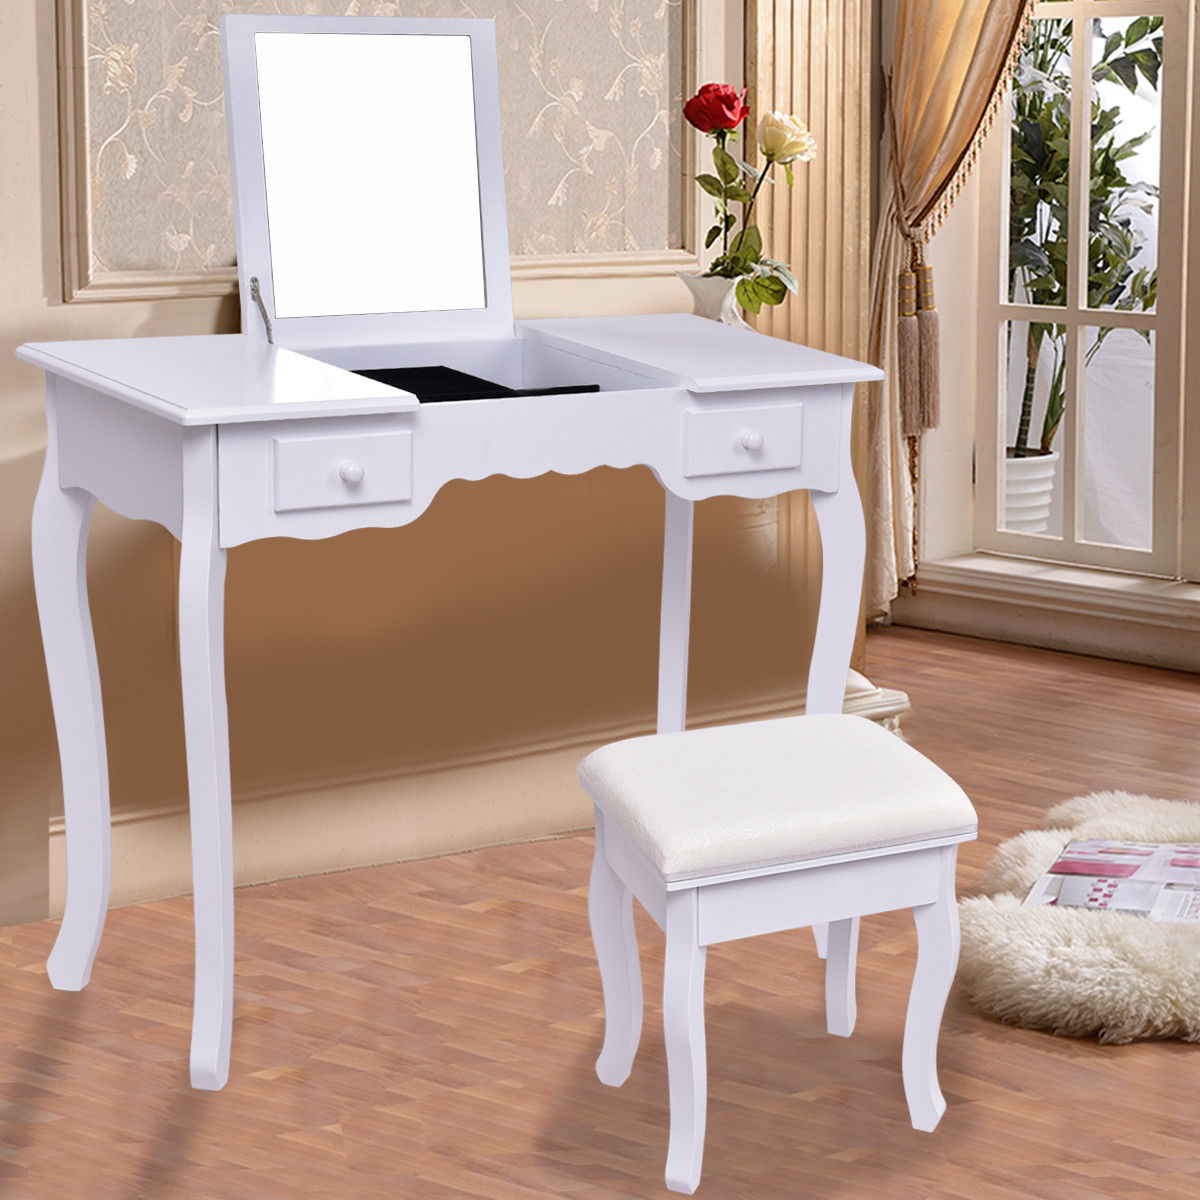 Costway Vanity Dressing Table Set Mirrored bathroom W Stool Table Desk White by Costway